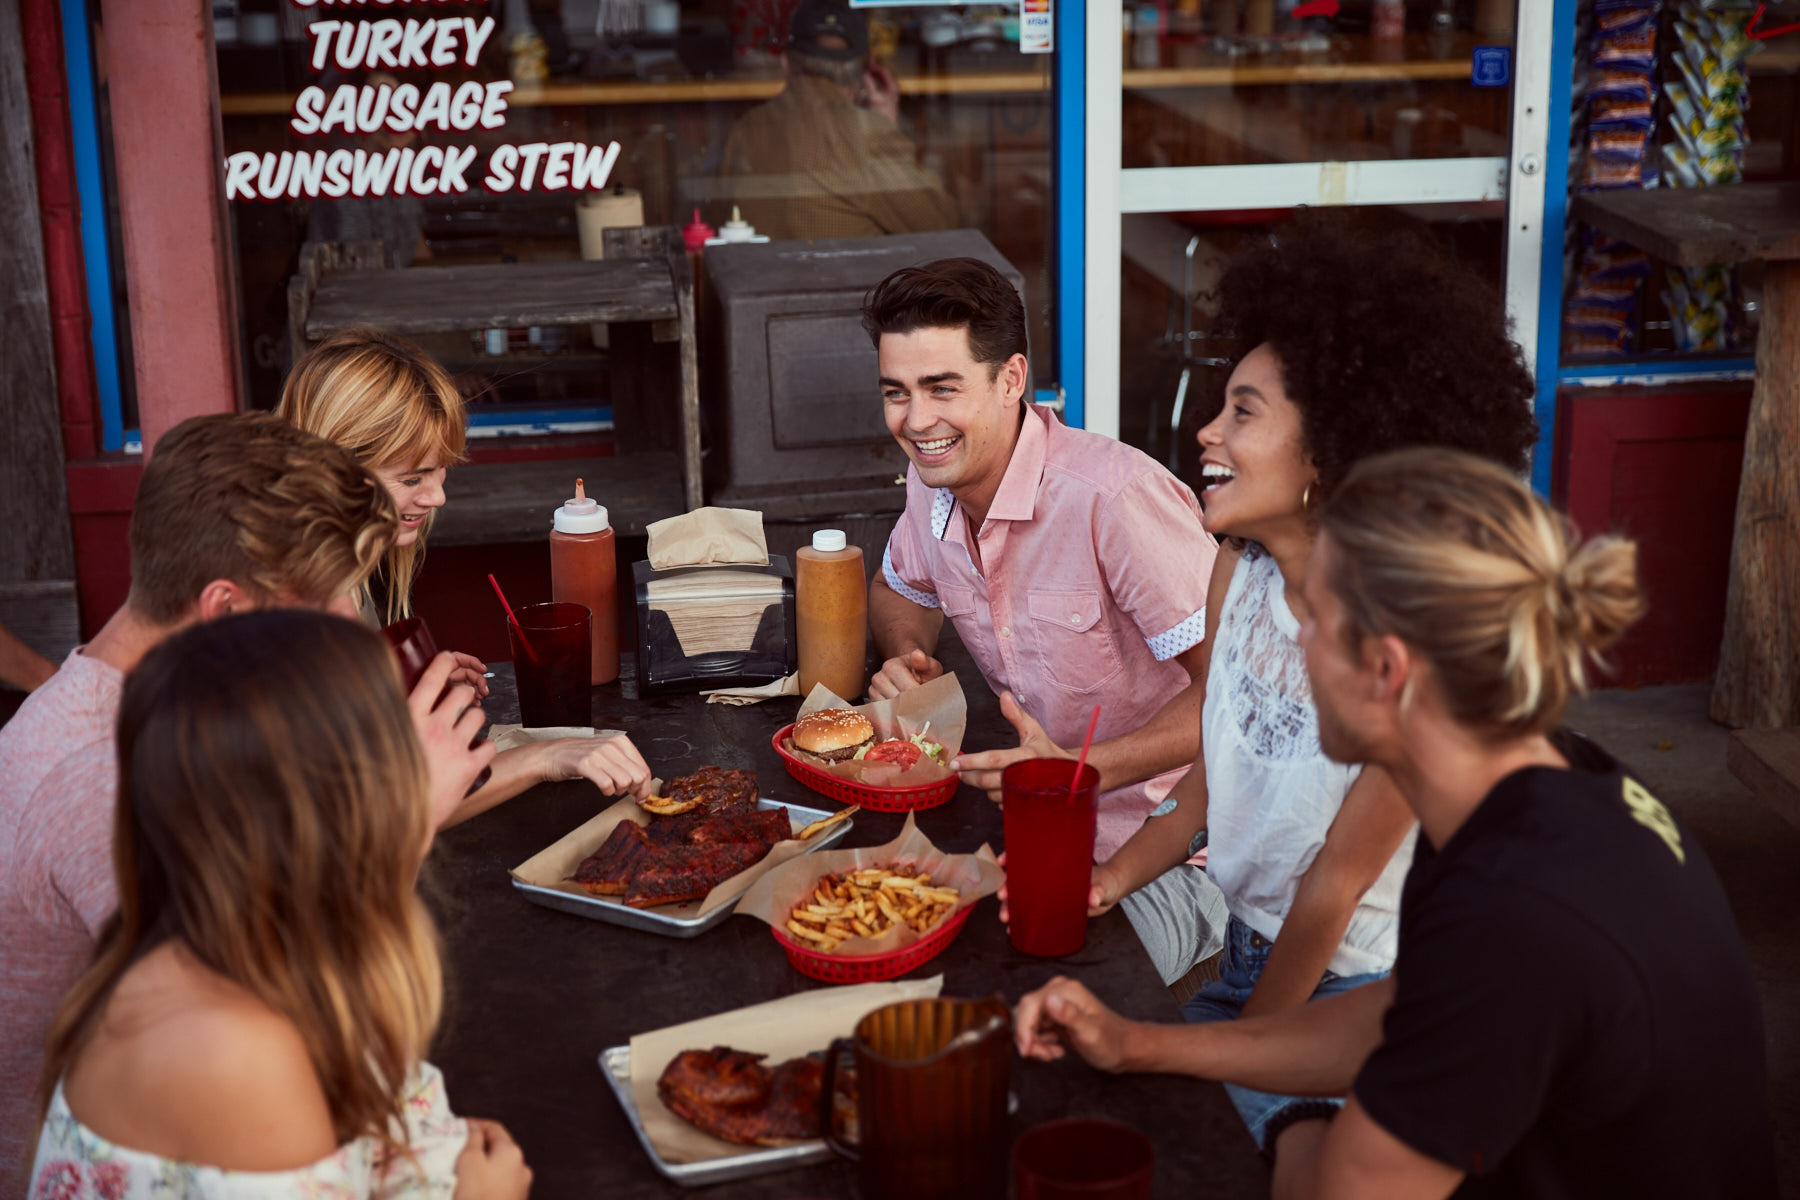 Group of six friends, wearing Buckle clothing, hanging out during a BBQ meal at a restaurant.